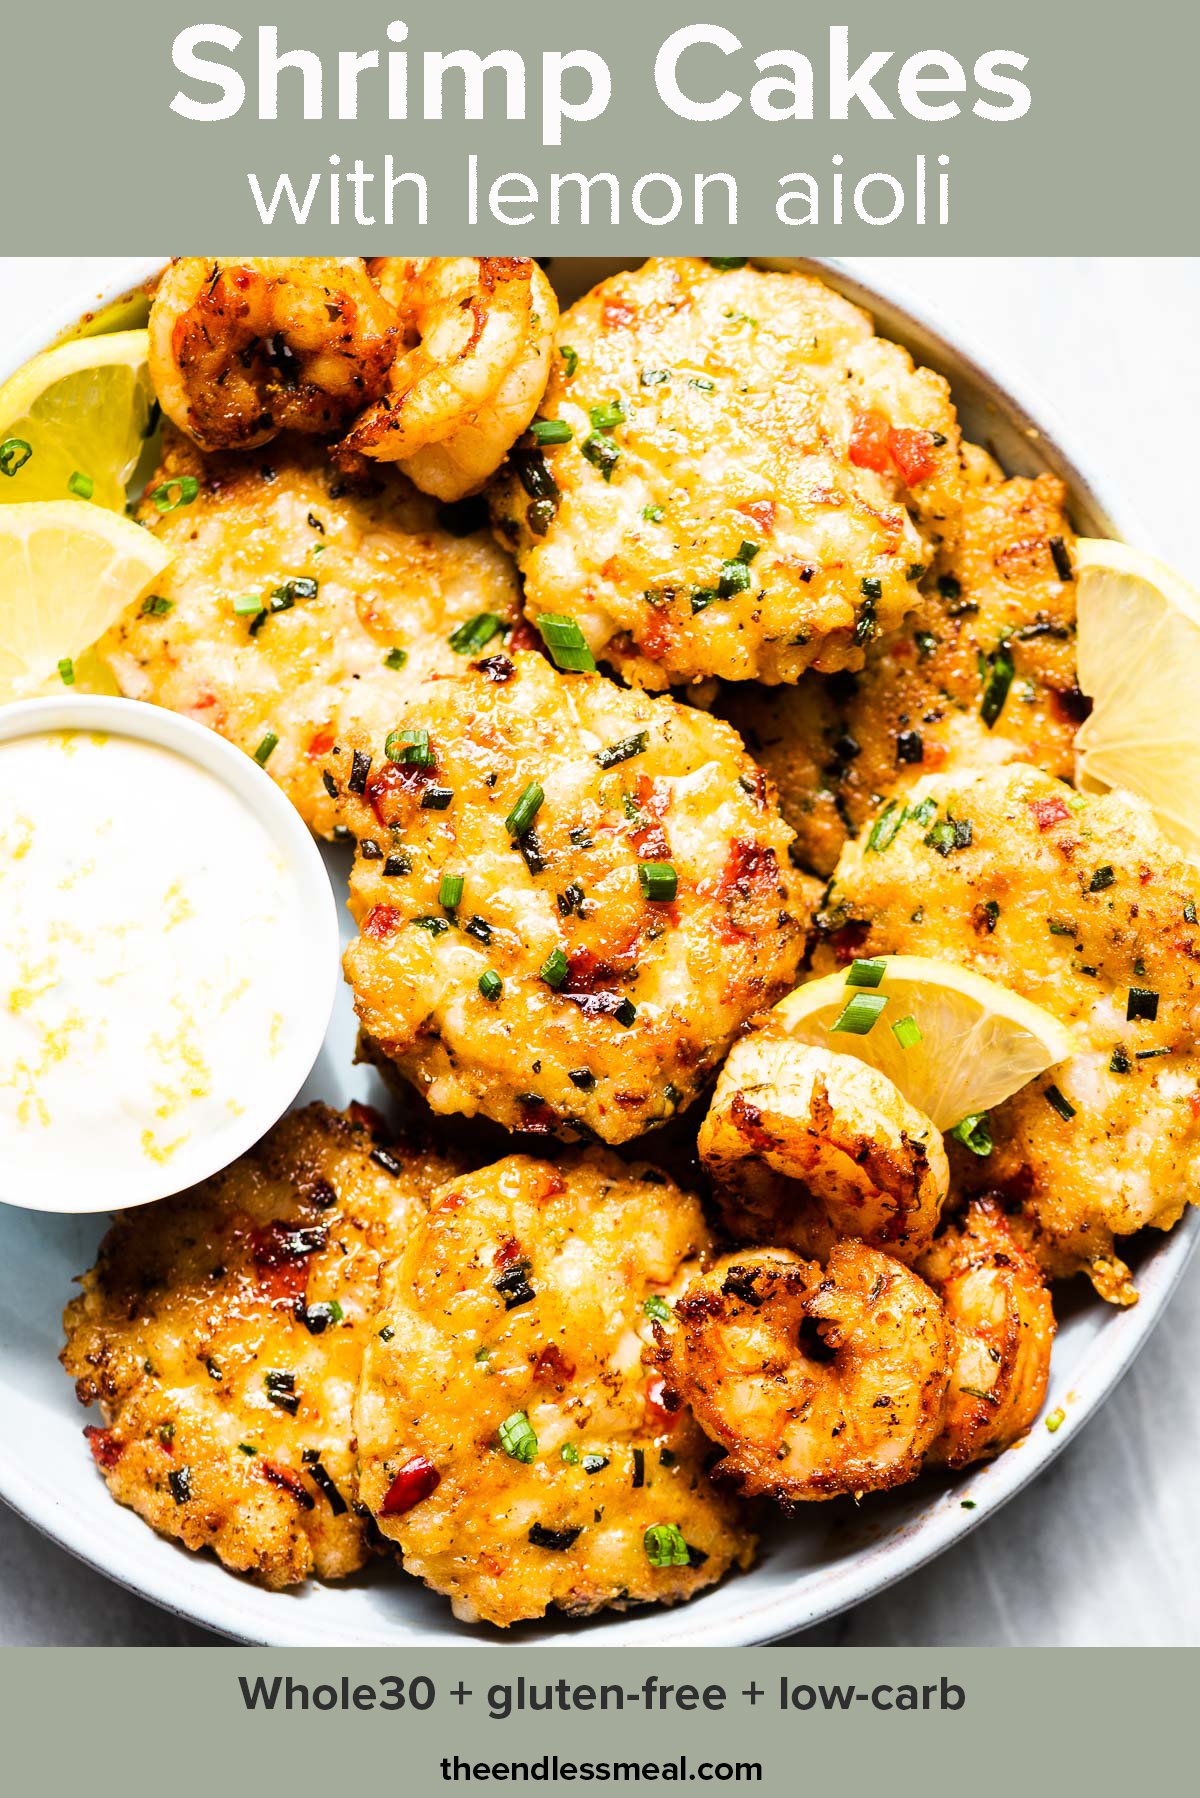 Tender shrimp cakes on a platter with a side of lemon aioli and the recipe title on top of the picture.